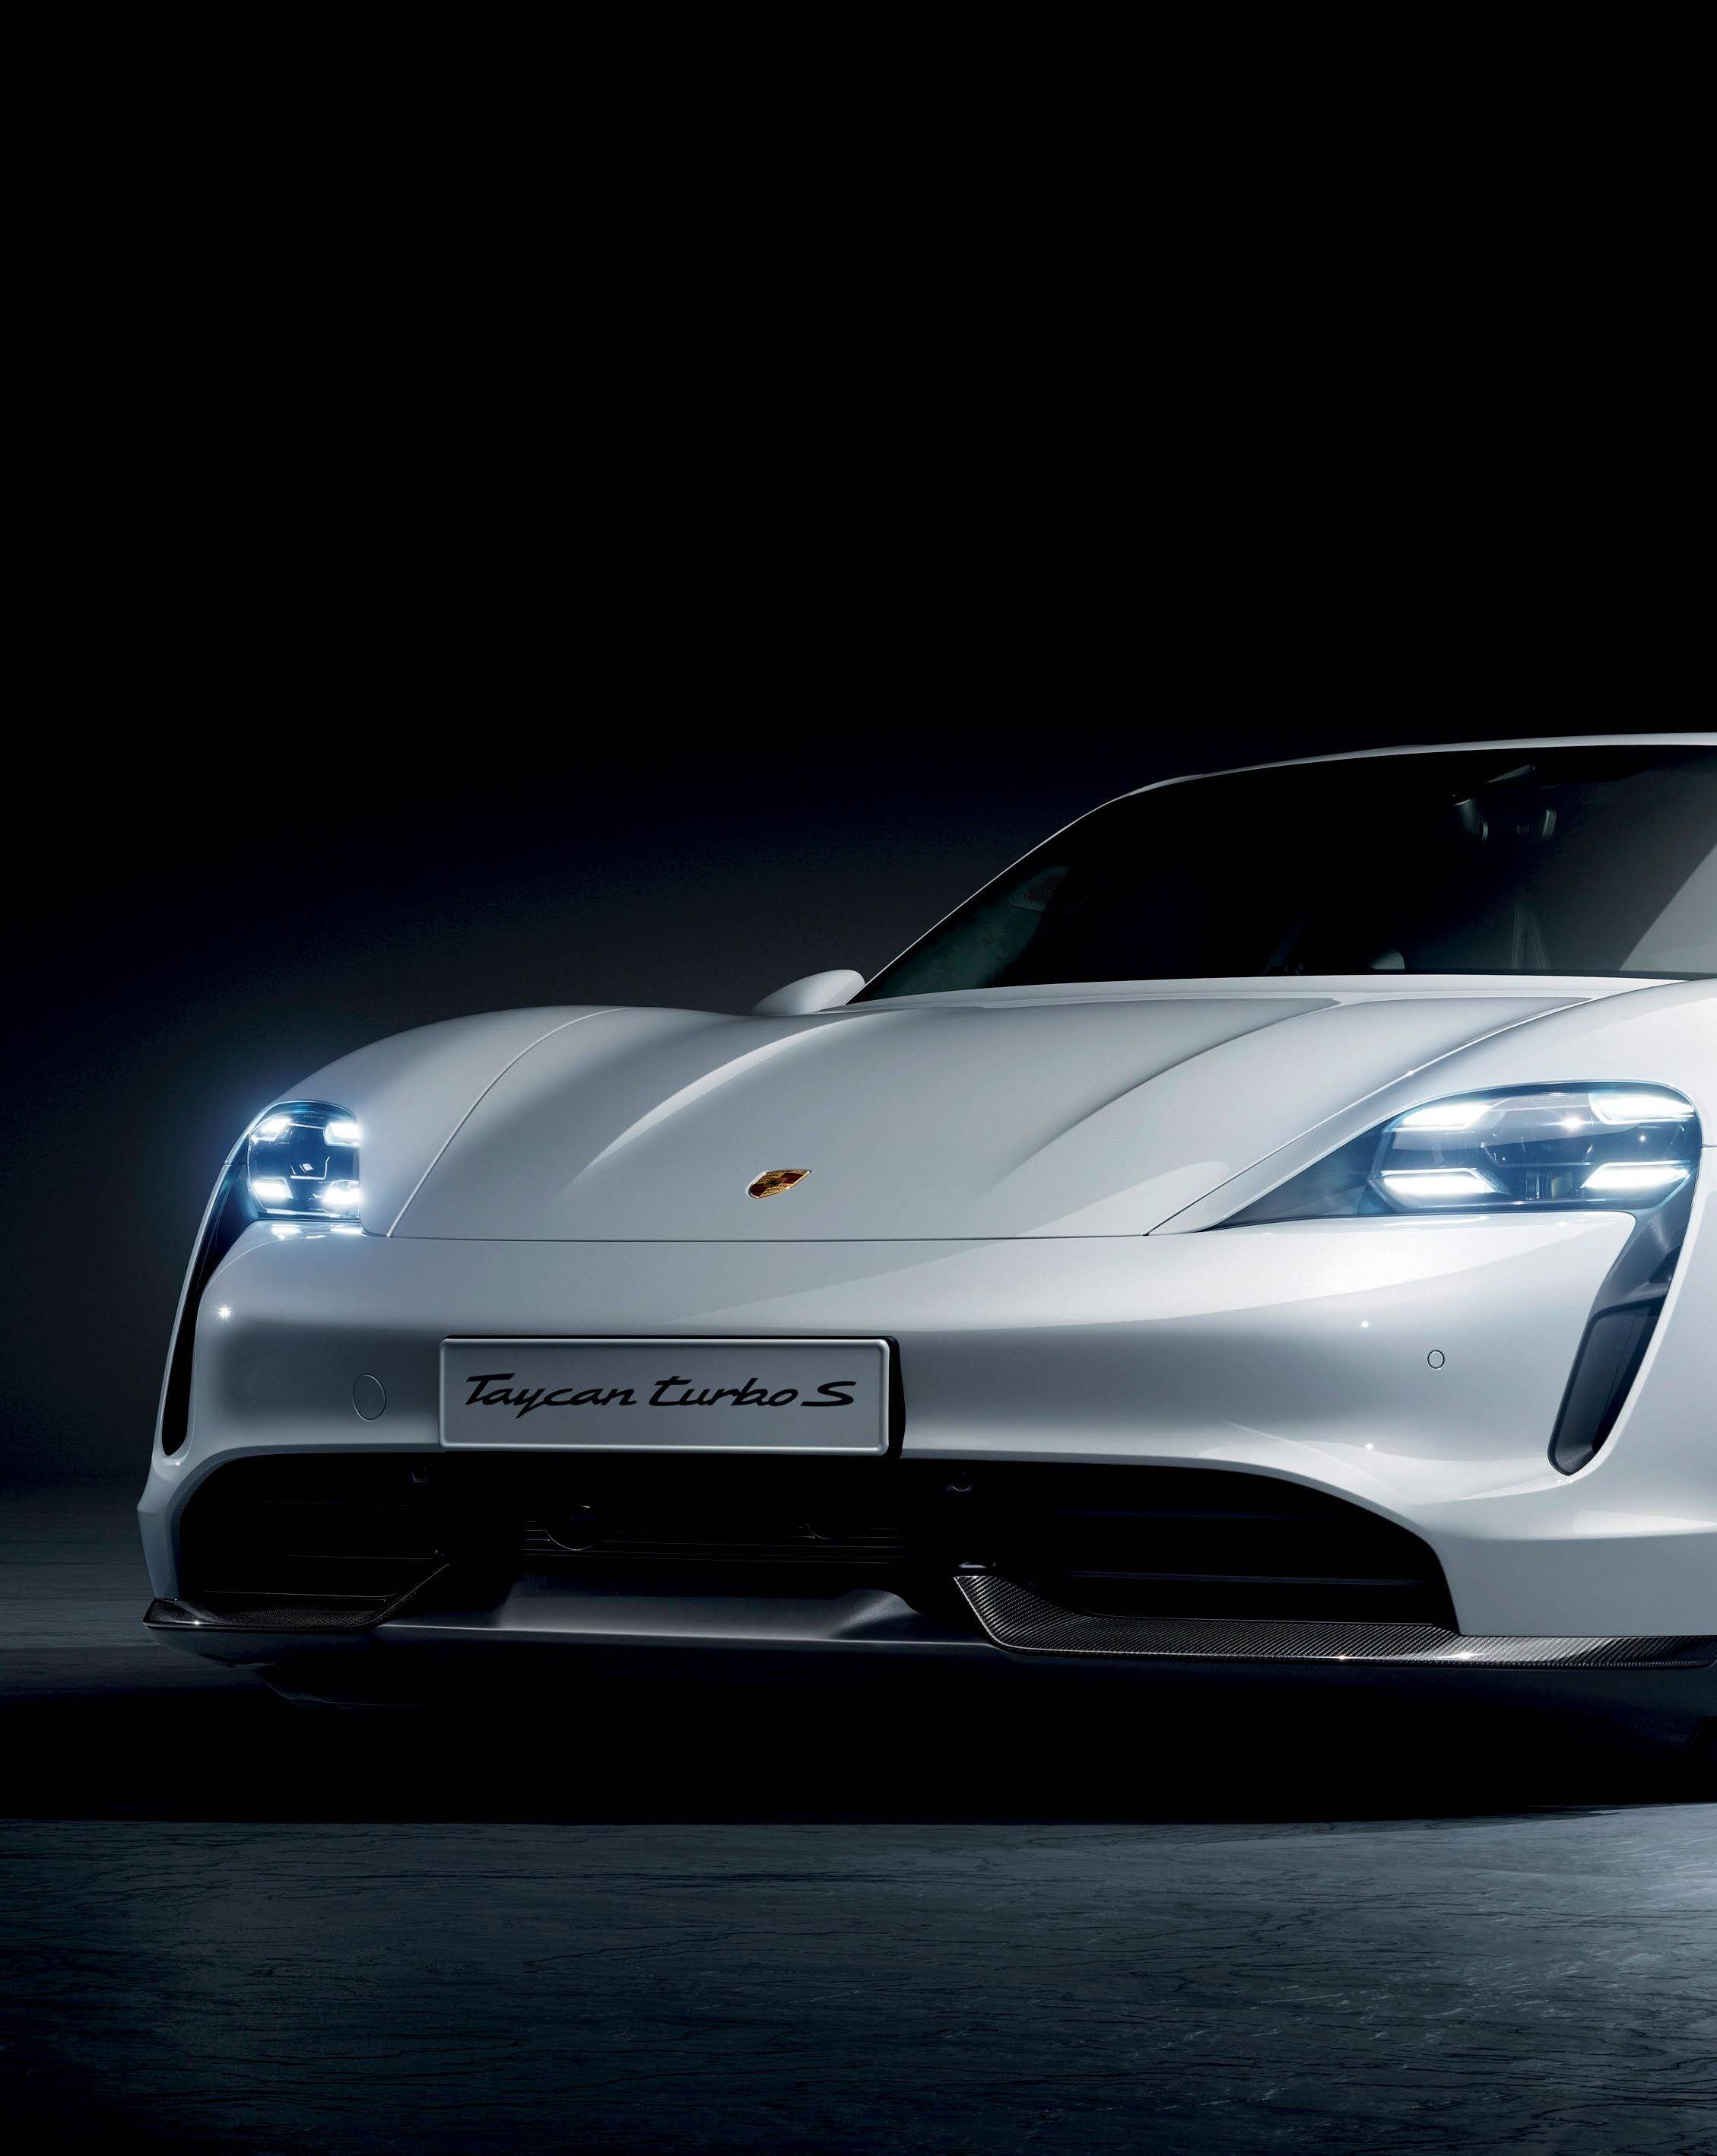 Porsche's Electric Future